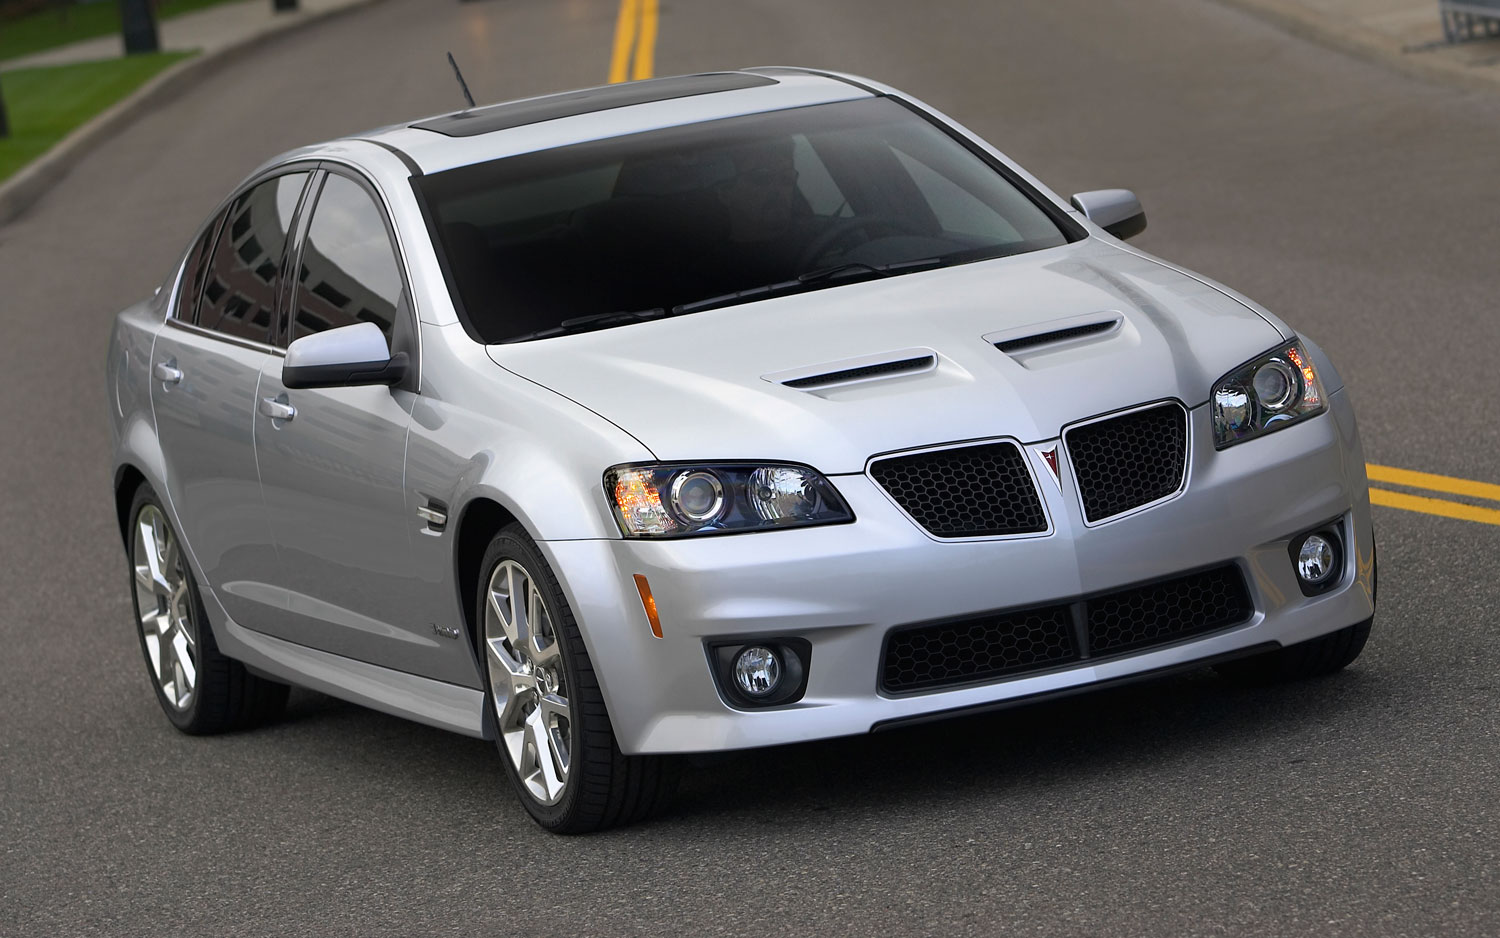 Gm Courting Saturn Pontiac Owners Who Switched To Other Brands